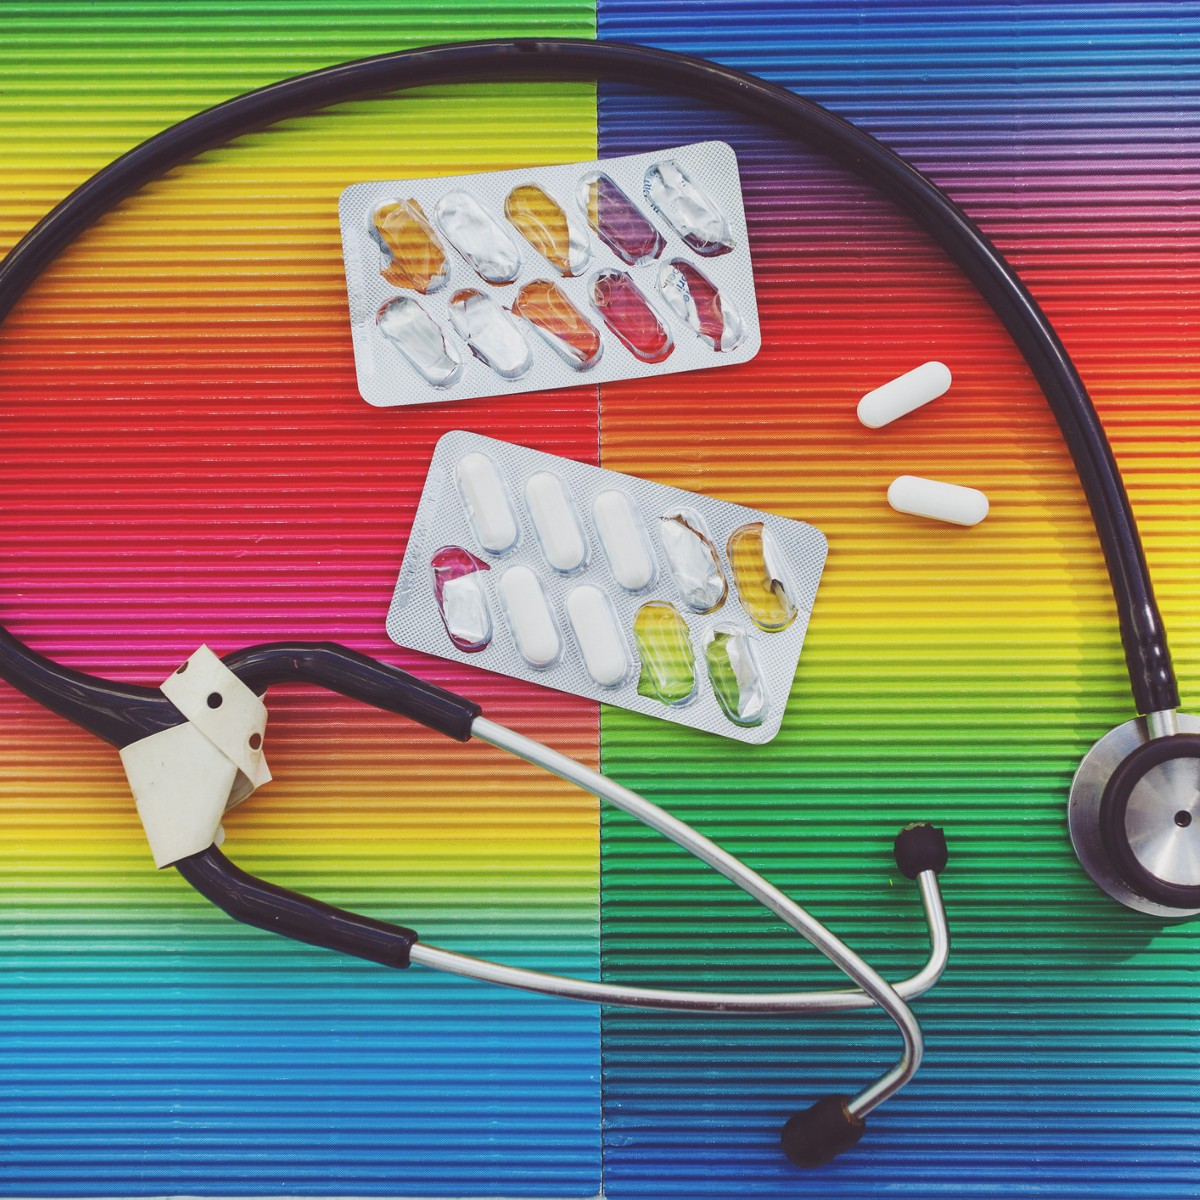 For Many Trans People, Telemedicine Is the Best Shot for Decent Health Care